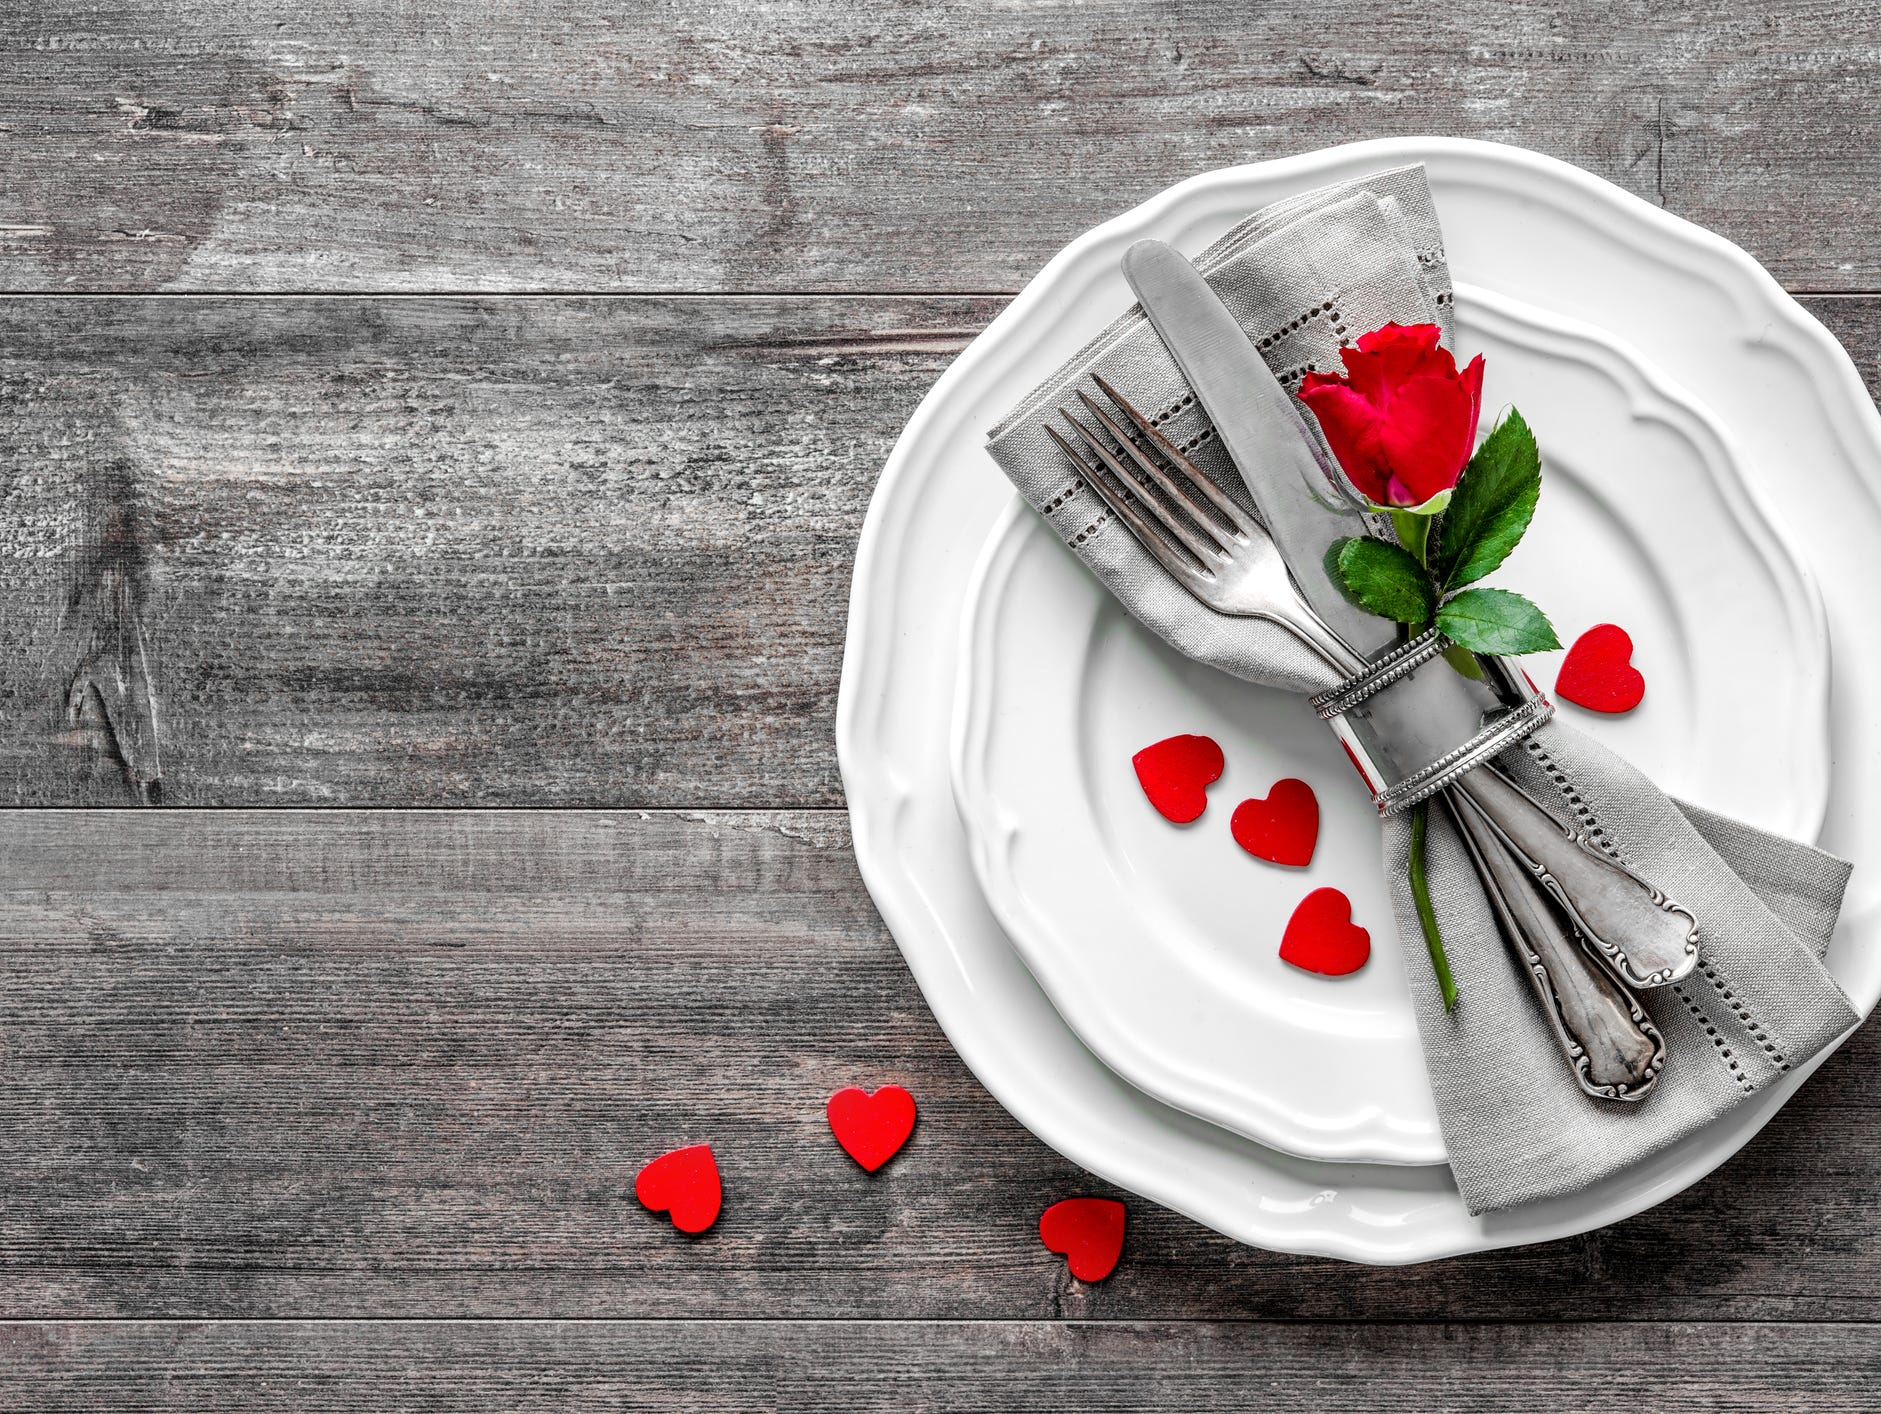 Roses are red, violates are blue, does Valentines dinner &  babysitter on the INSIDER sound good to you?